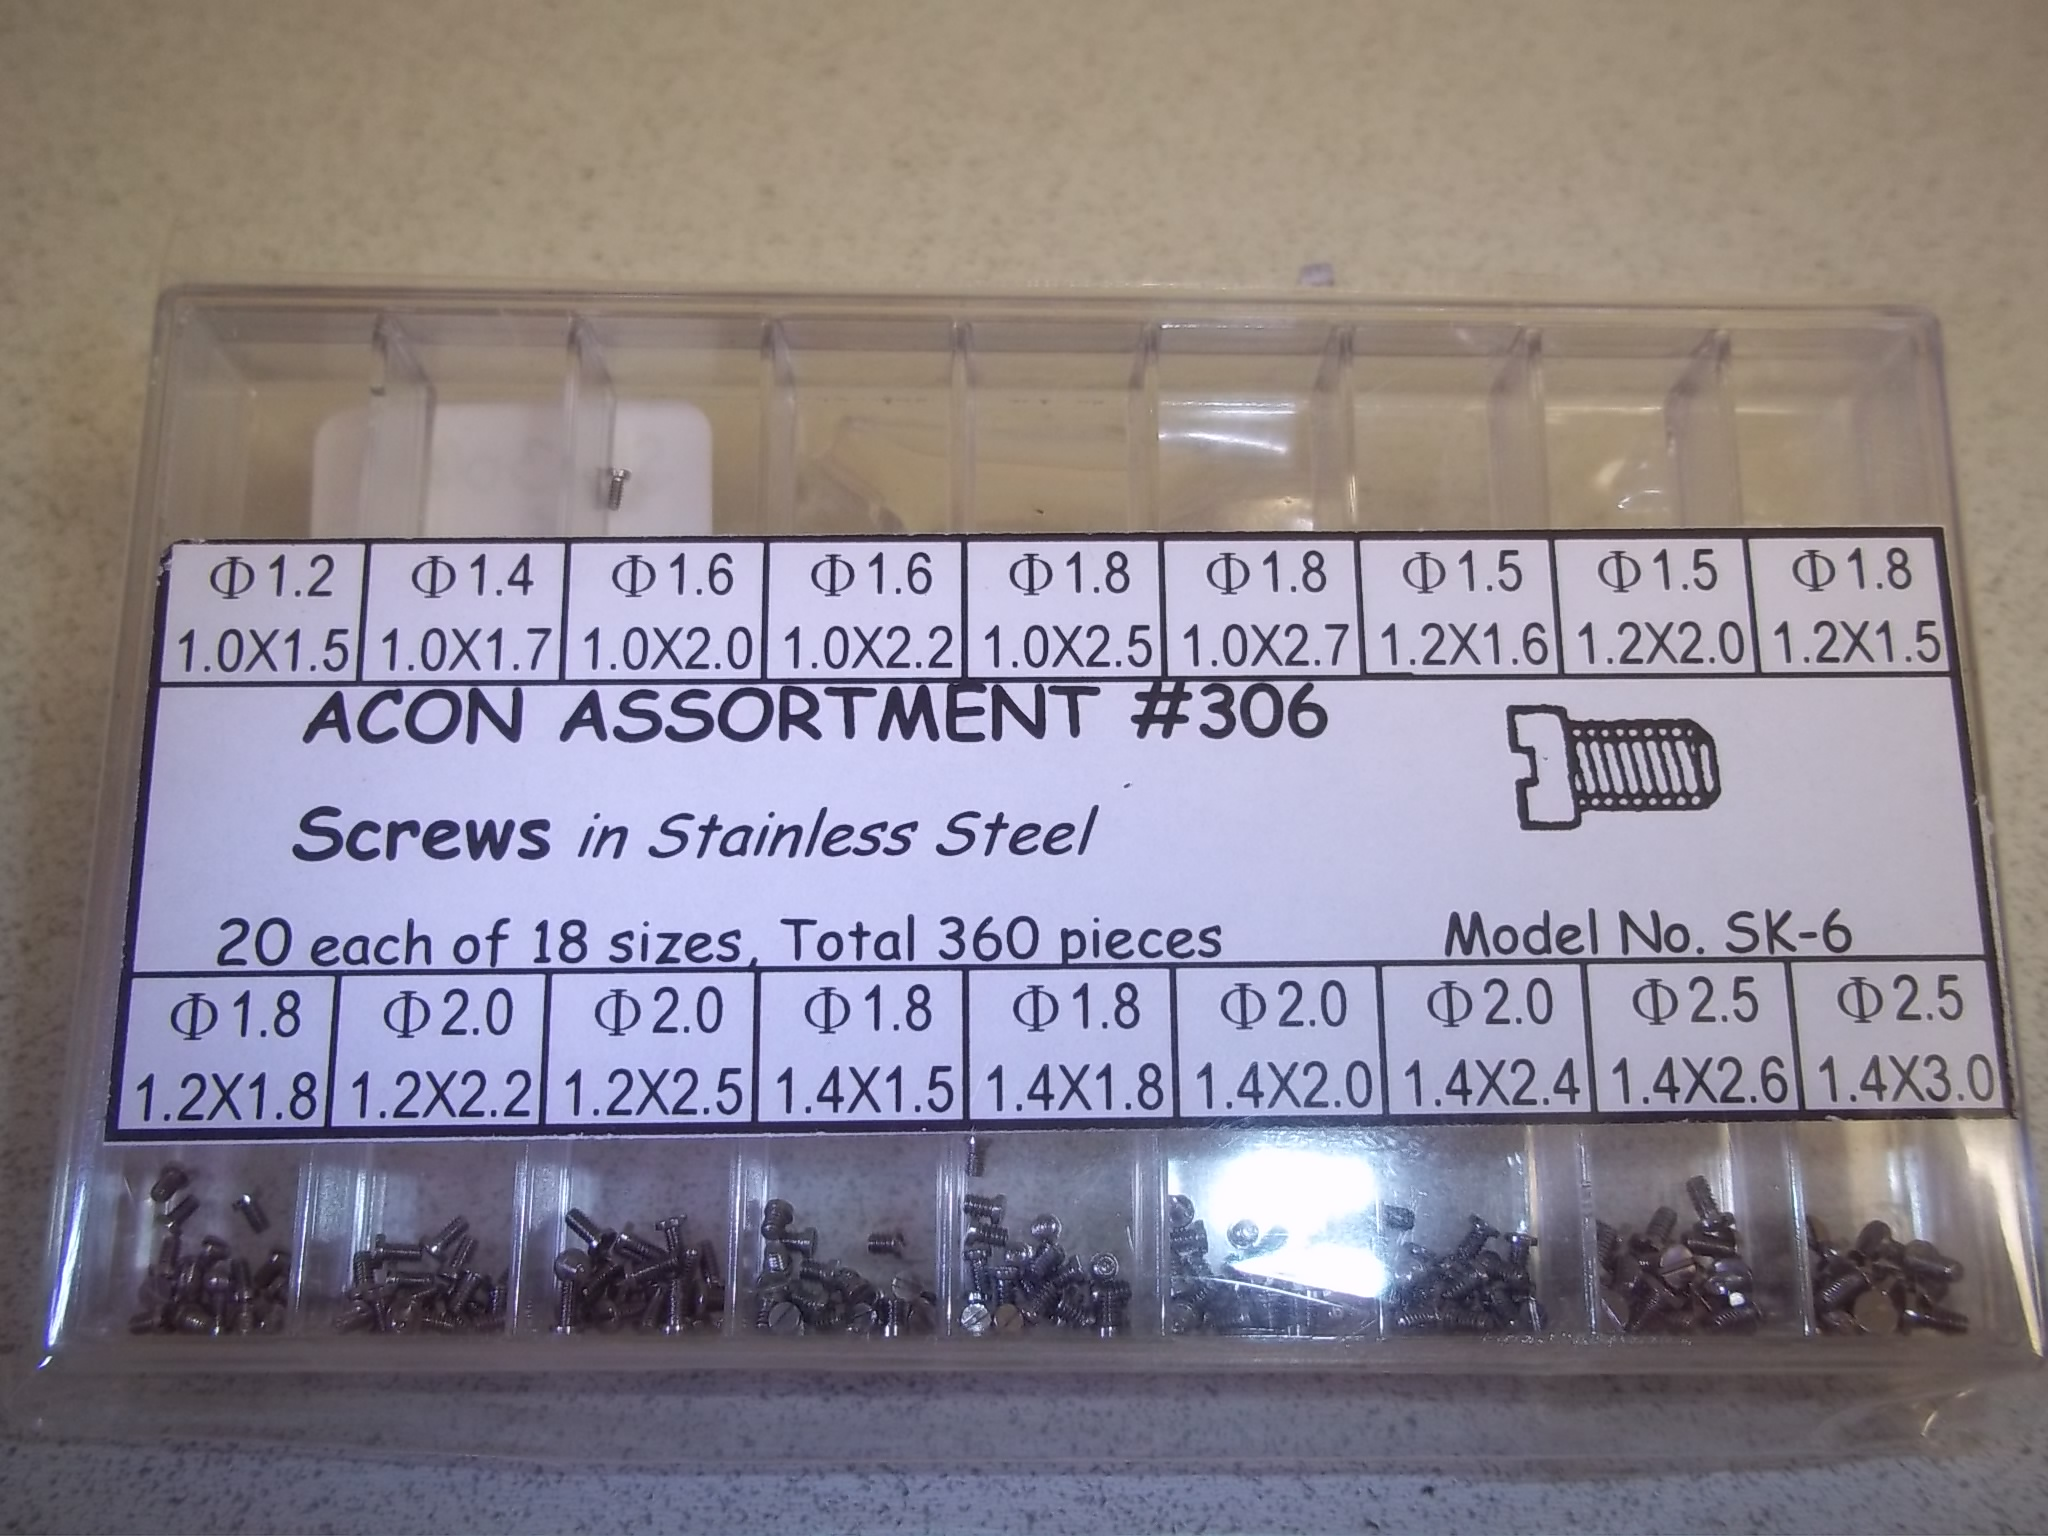 SC306A New! Assortment of Stainless Steel Screws--360 pieces- Acon